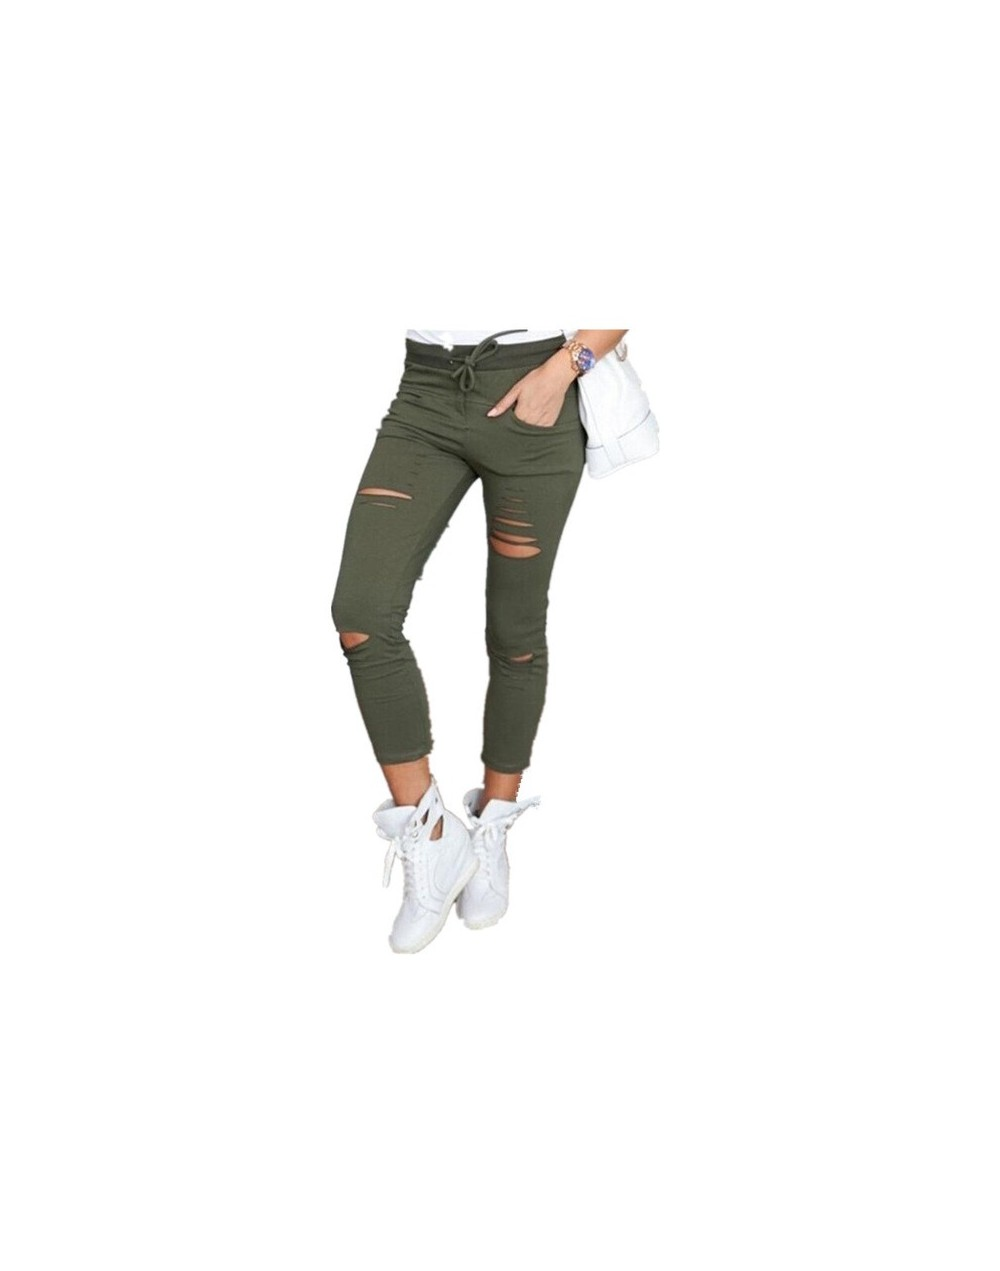 Womens Ripped Skinny Denim Jeans Ladies Push Up Jegging Trousers Black High Waist Stretch Ripped Slim Pencil Pants Plus Size...